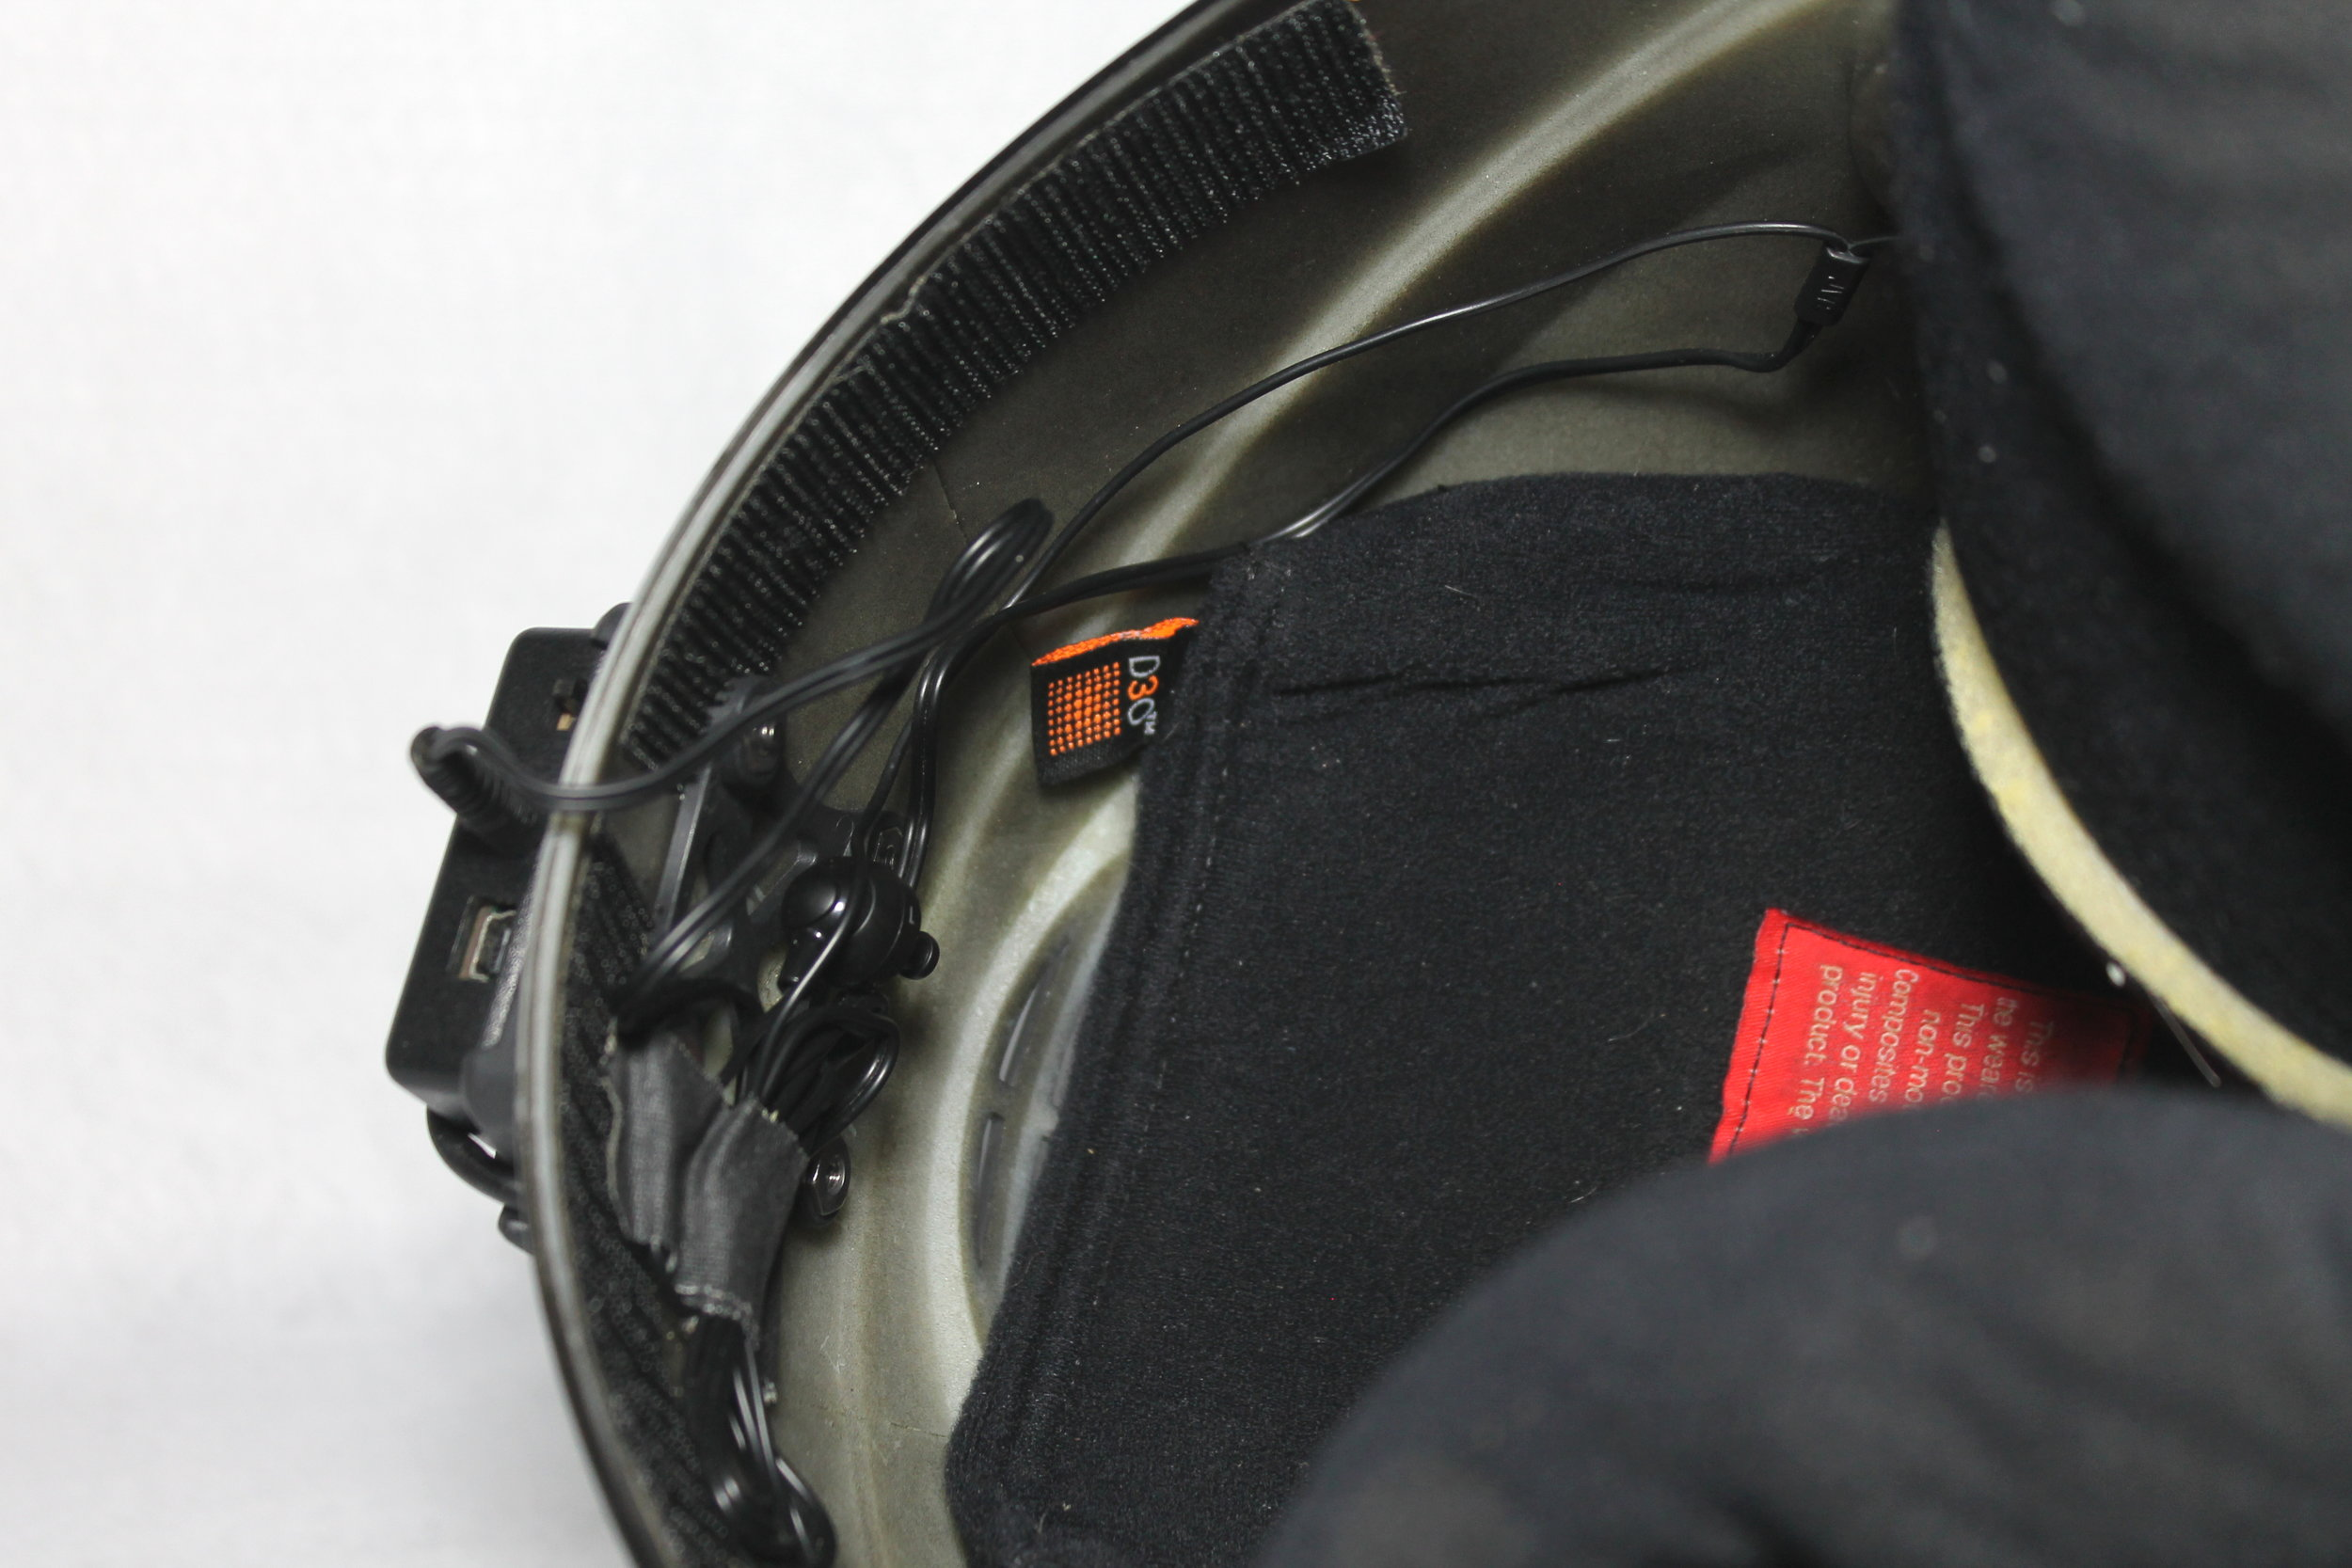 The padding is pulled back to show how the headphone is routed from the back of the helmet where the excess is secured to the hole in the padding on the right side of my helmet for the audible.